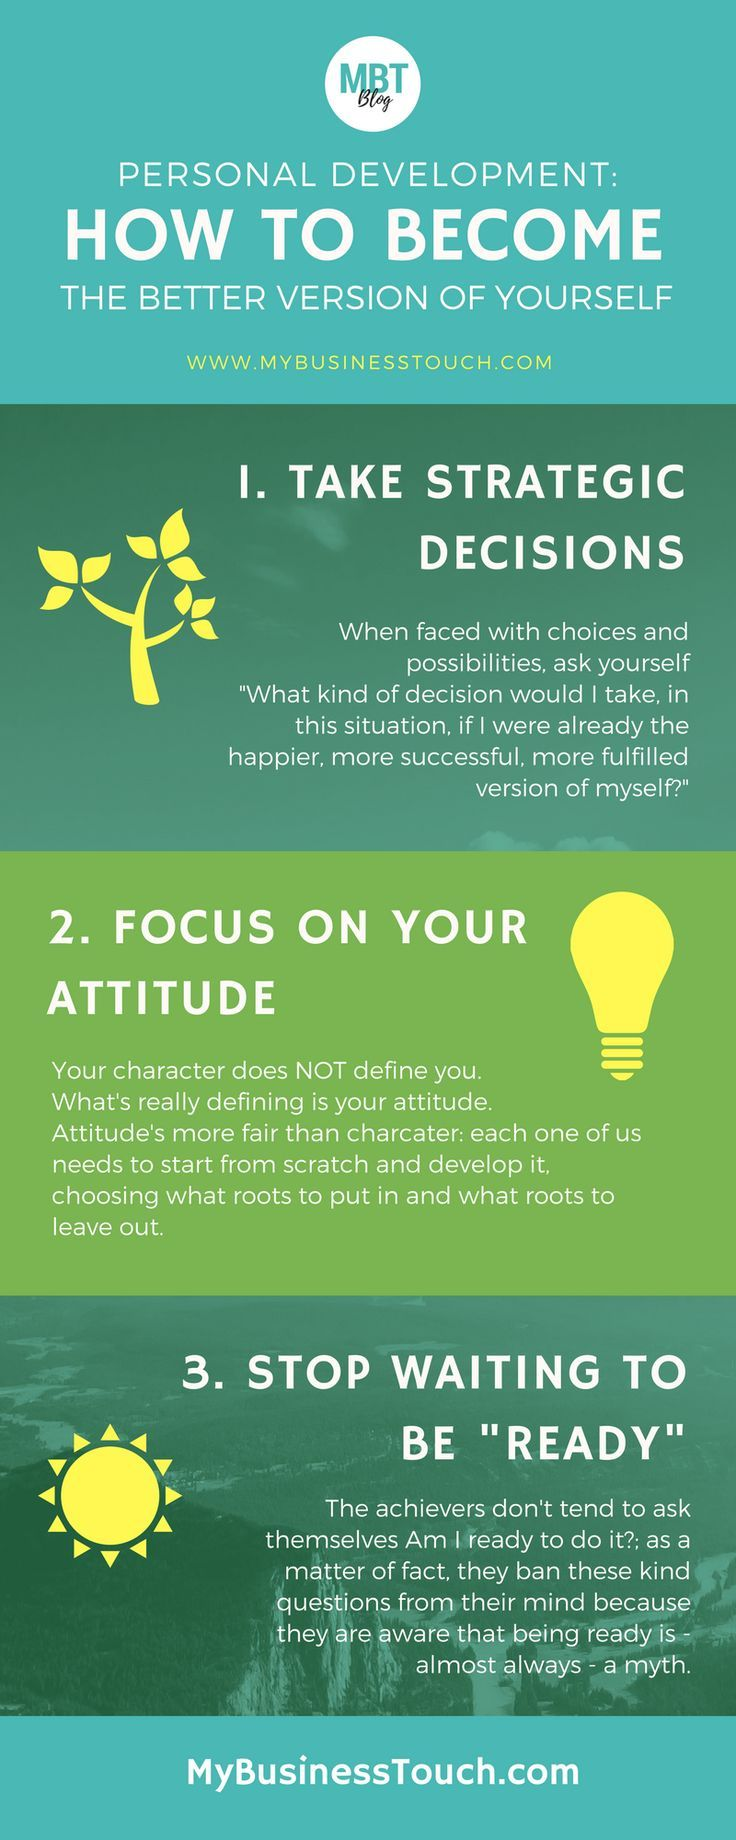 Infographic on one of the most successful and proven personal development strategy: how to become the better version of yourself in three powerful steps! To get access to extra tips on personal development and professional development you can read the full article on the blog. See you there!